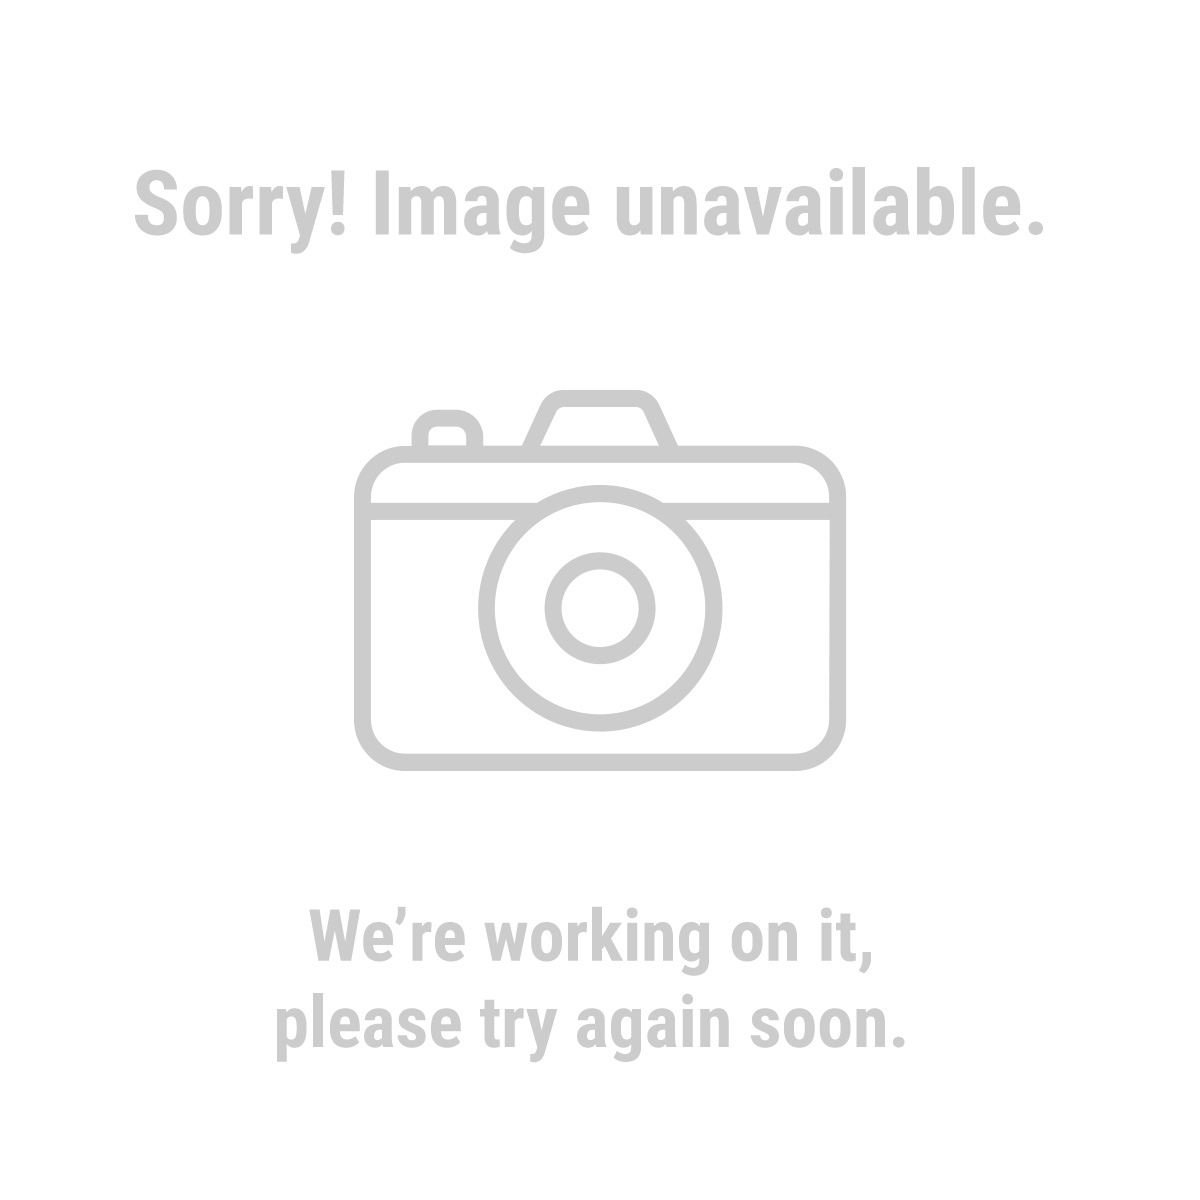 "Central Forge 92309 2"" Double Wheel Rope Pulley, 2 Piece Set"